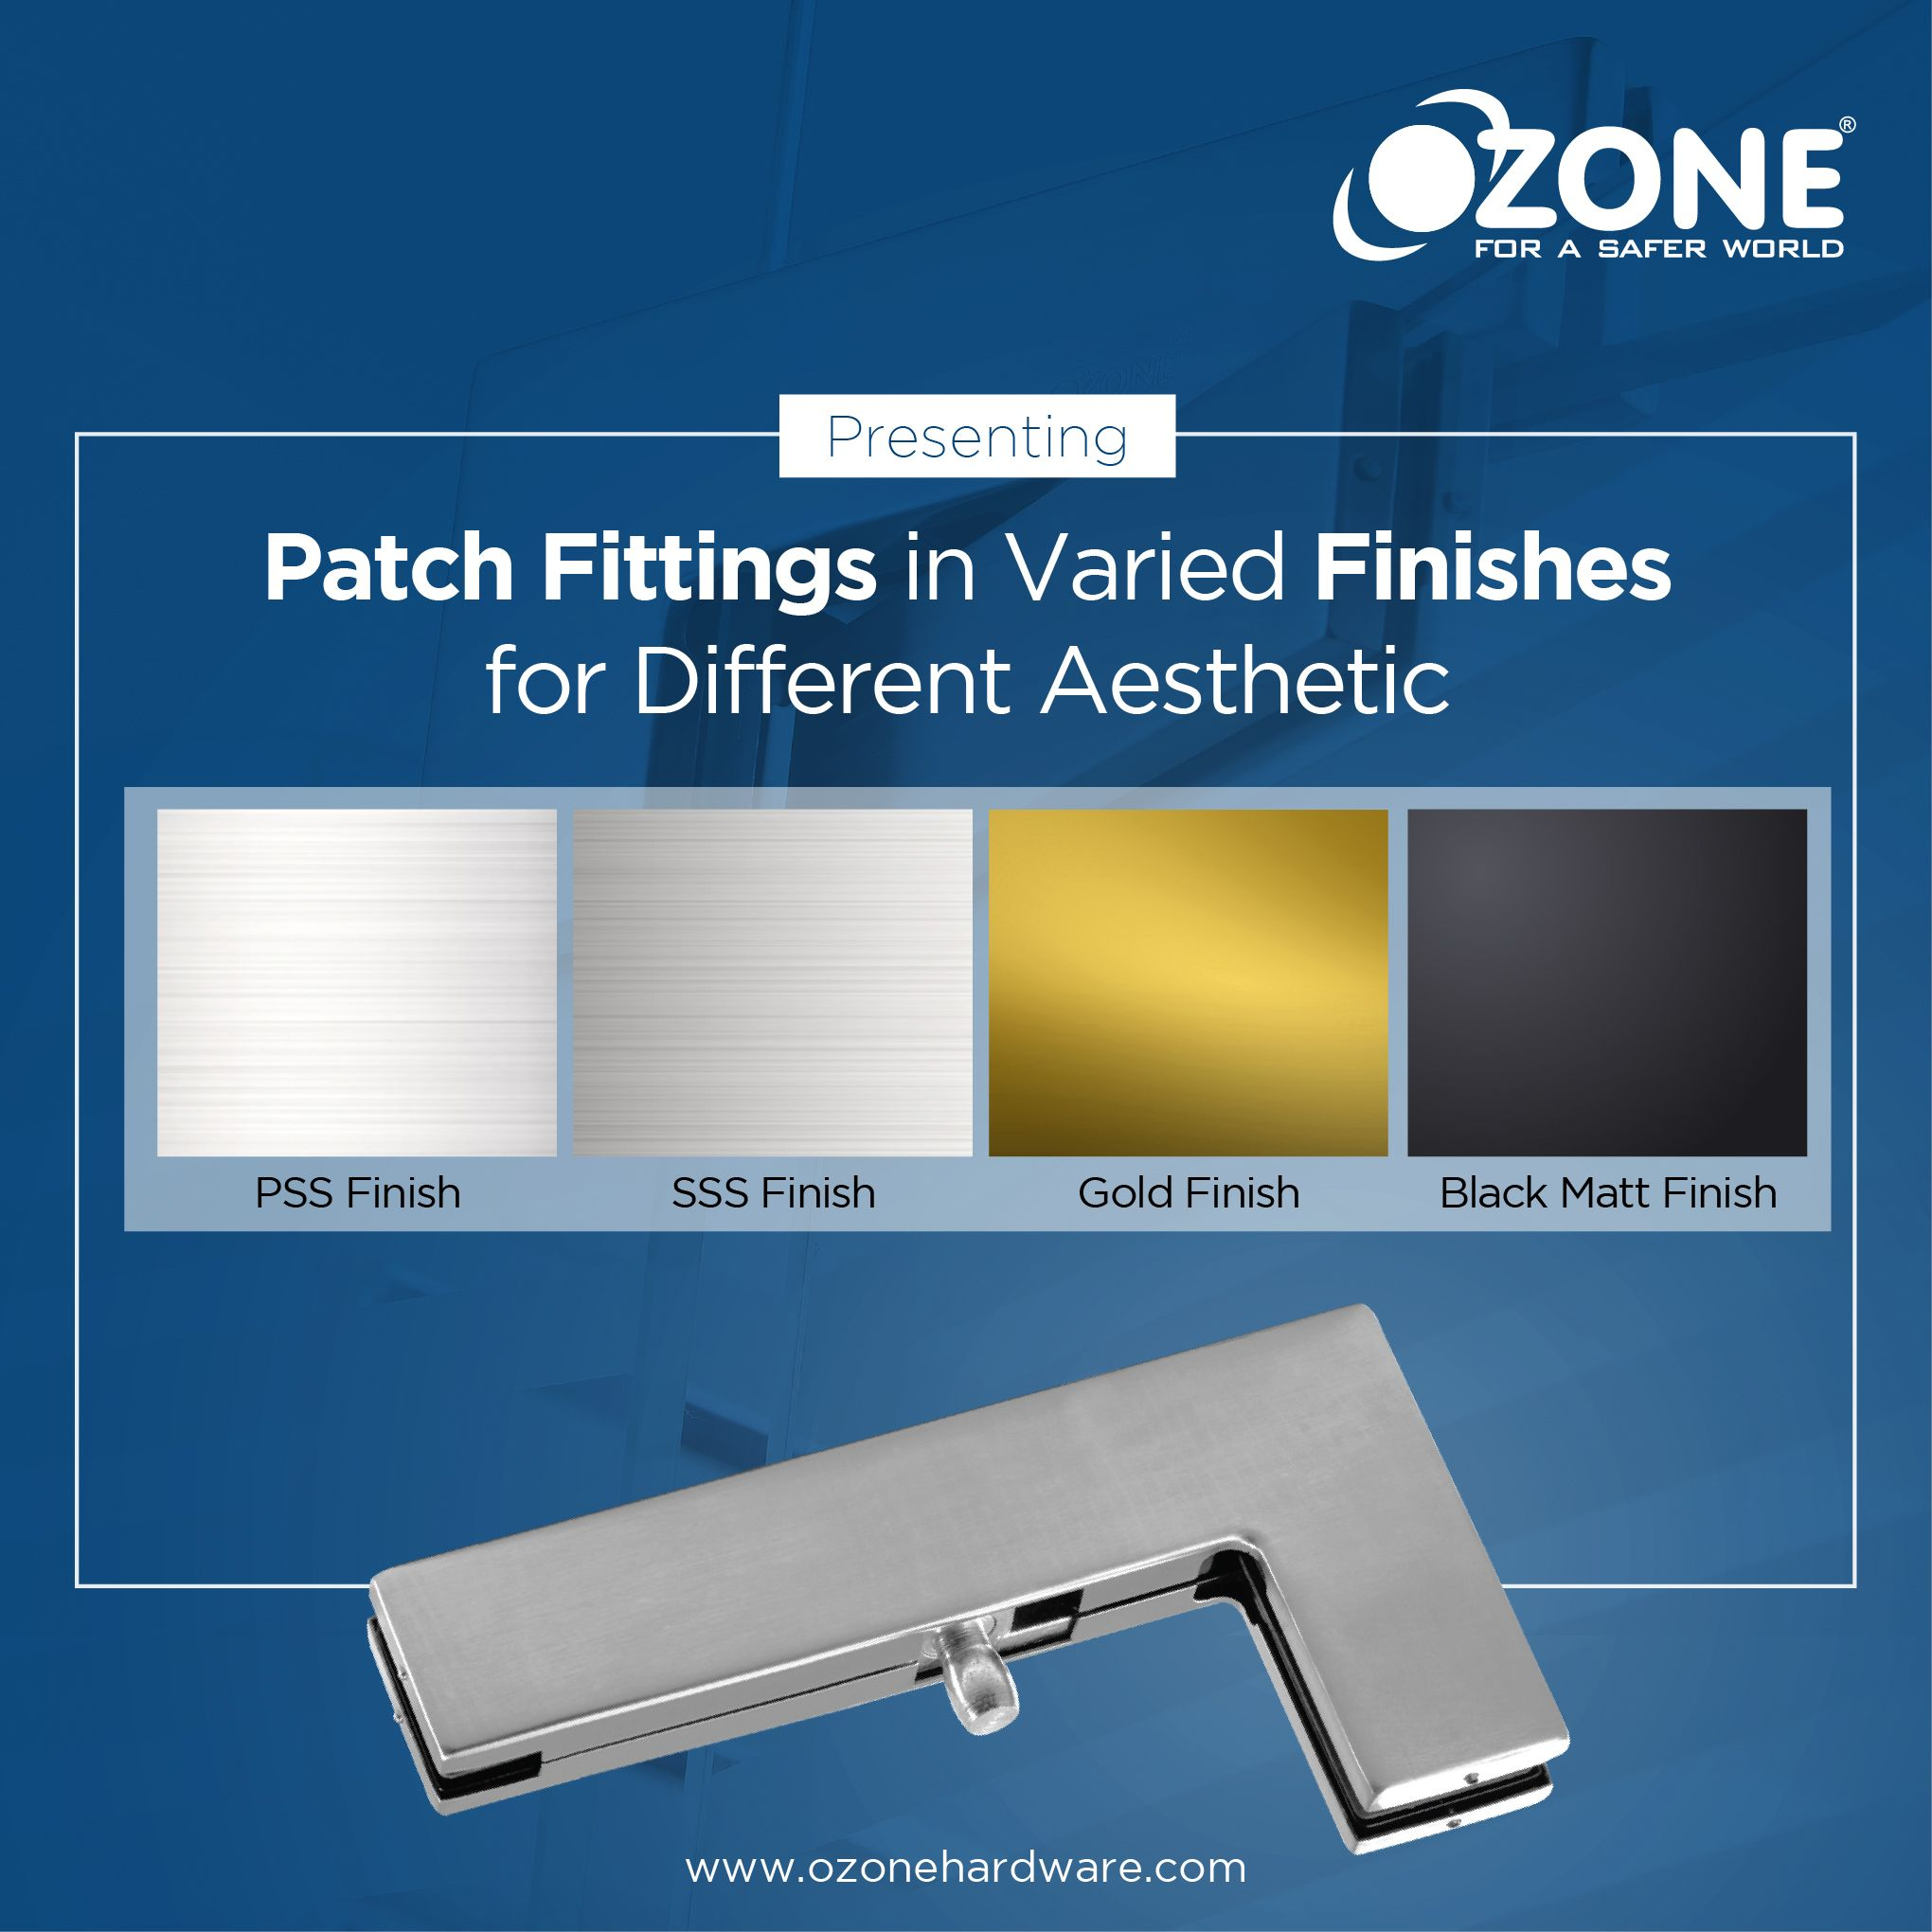 Pin by Ozone Hardware on Patch Fittings Commercial door